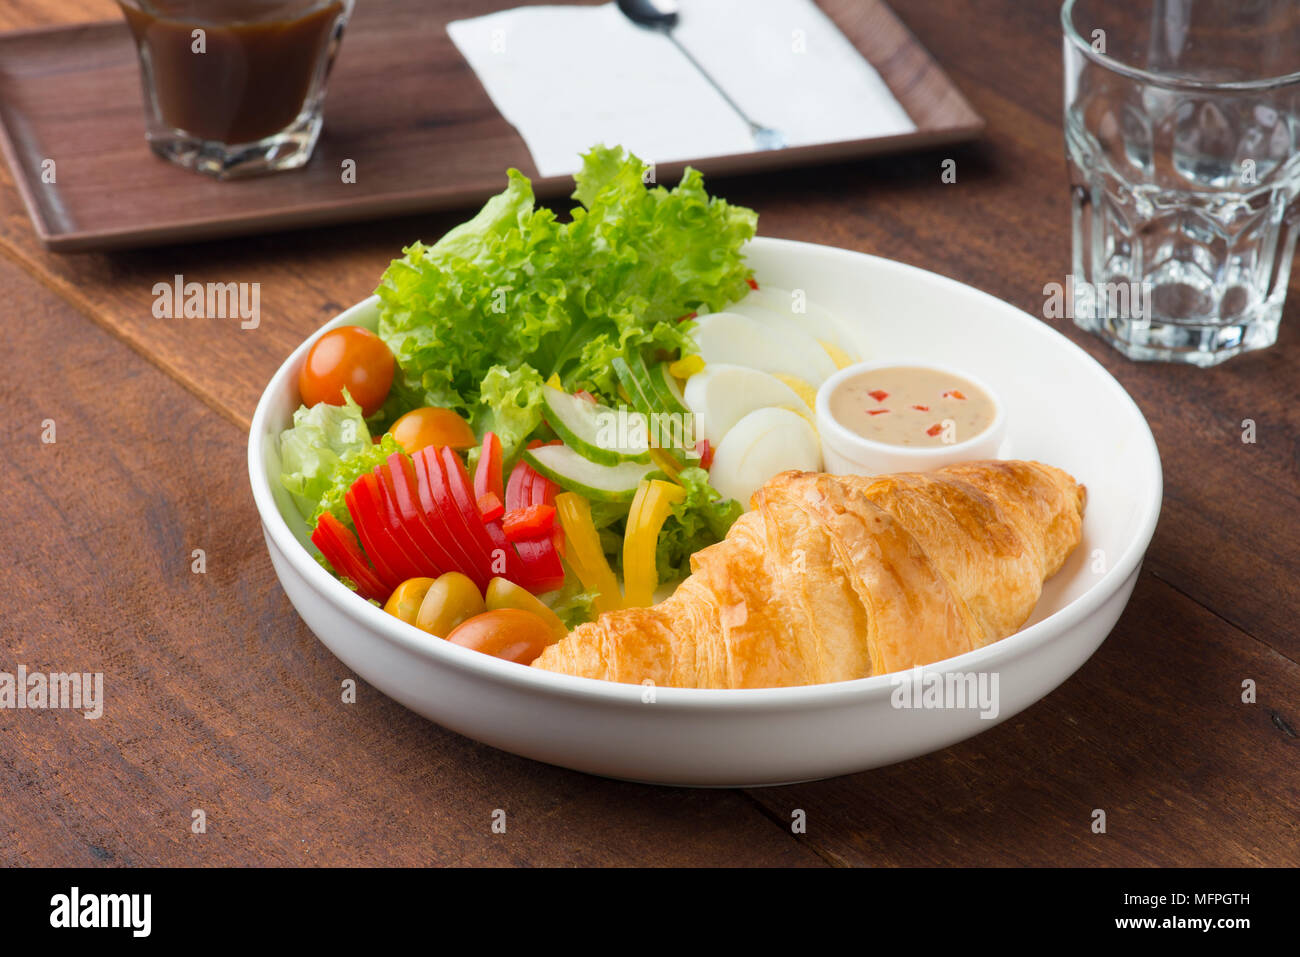 croissand and salad Stock Photo